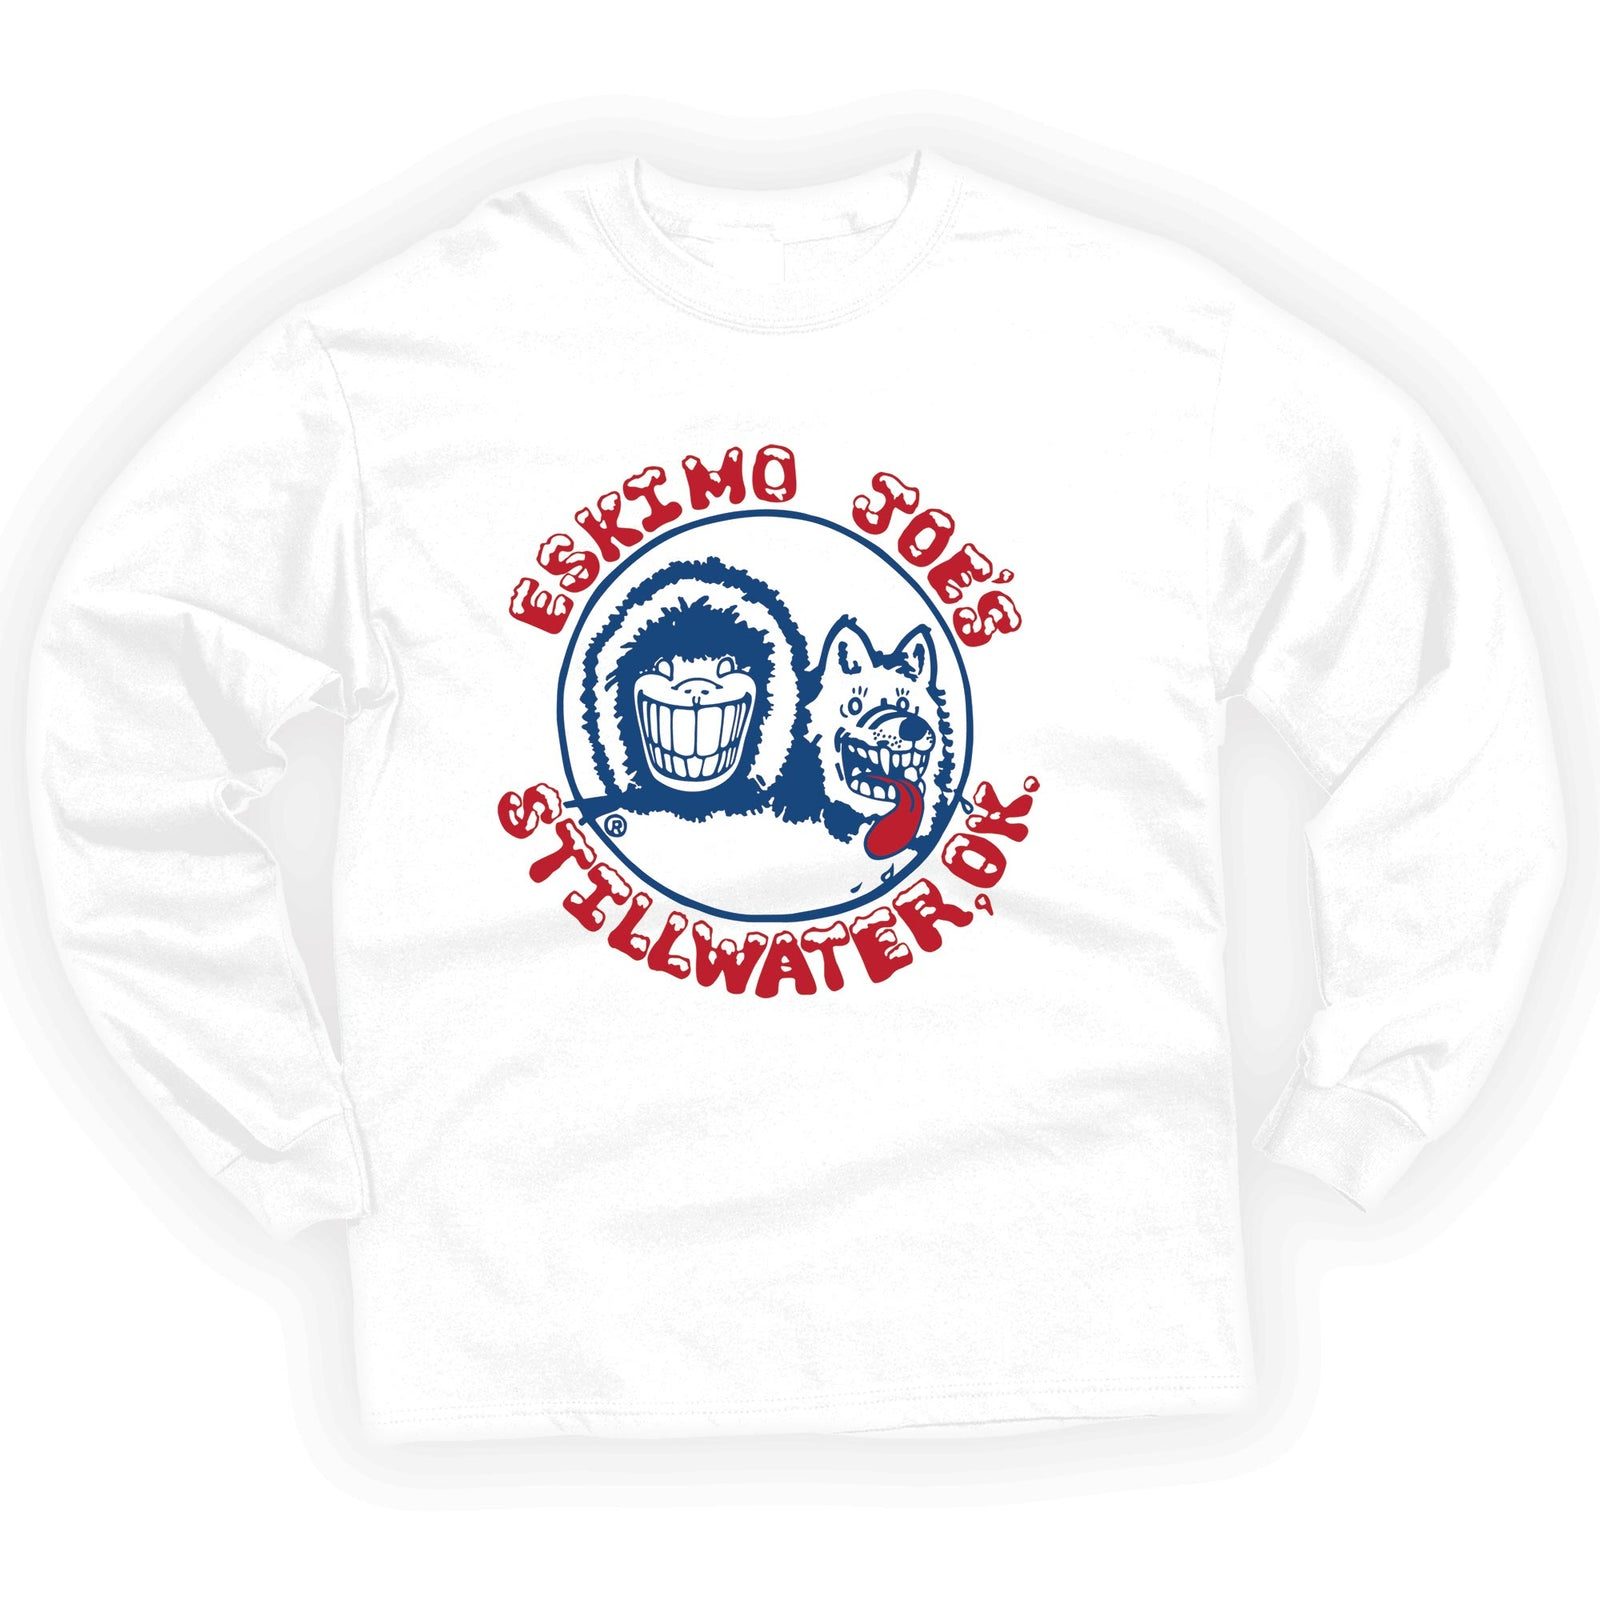 CLASSIC LONG SLEEVE TEES - LT - Eskimo Joe's Clothes